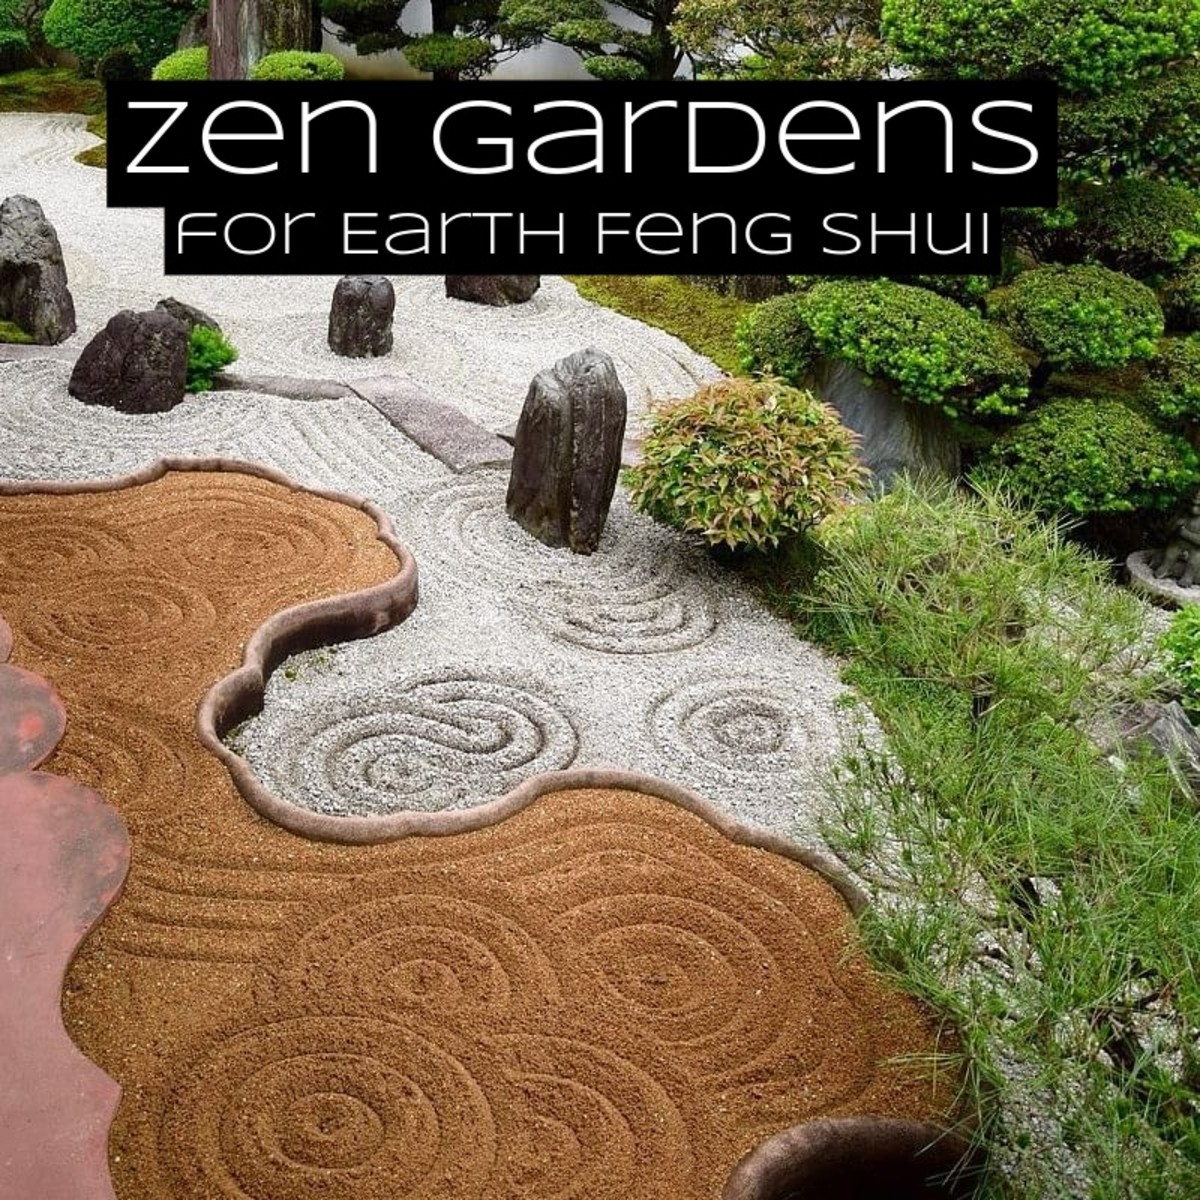 Zen gardens are meant to be places where you can relax and let your mind wander.